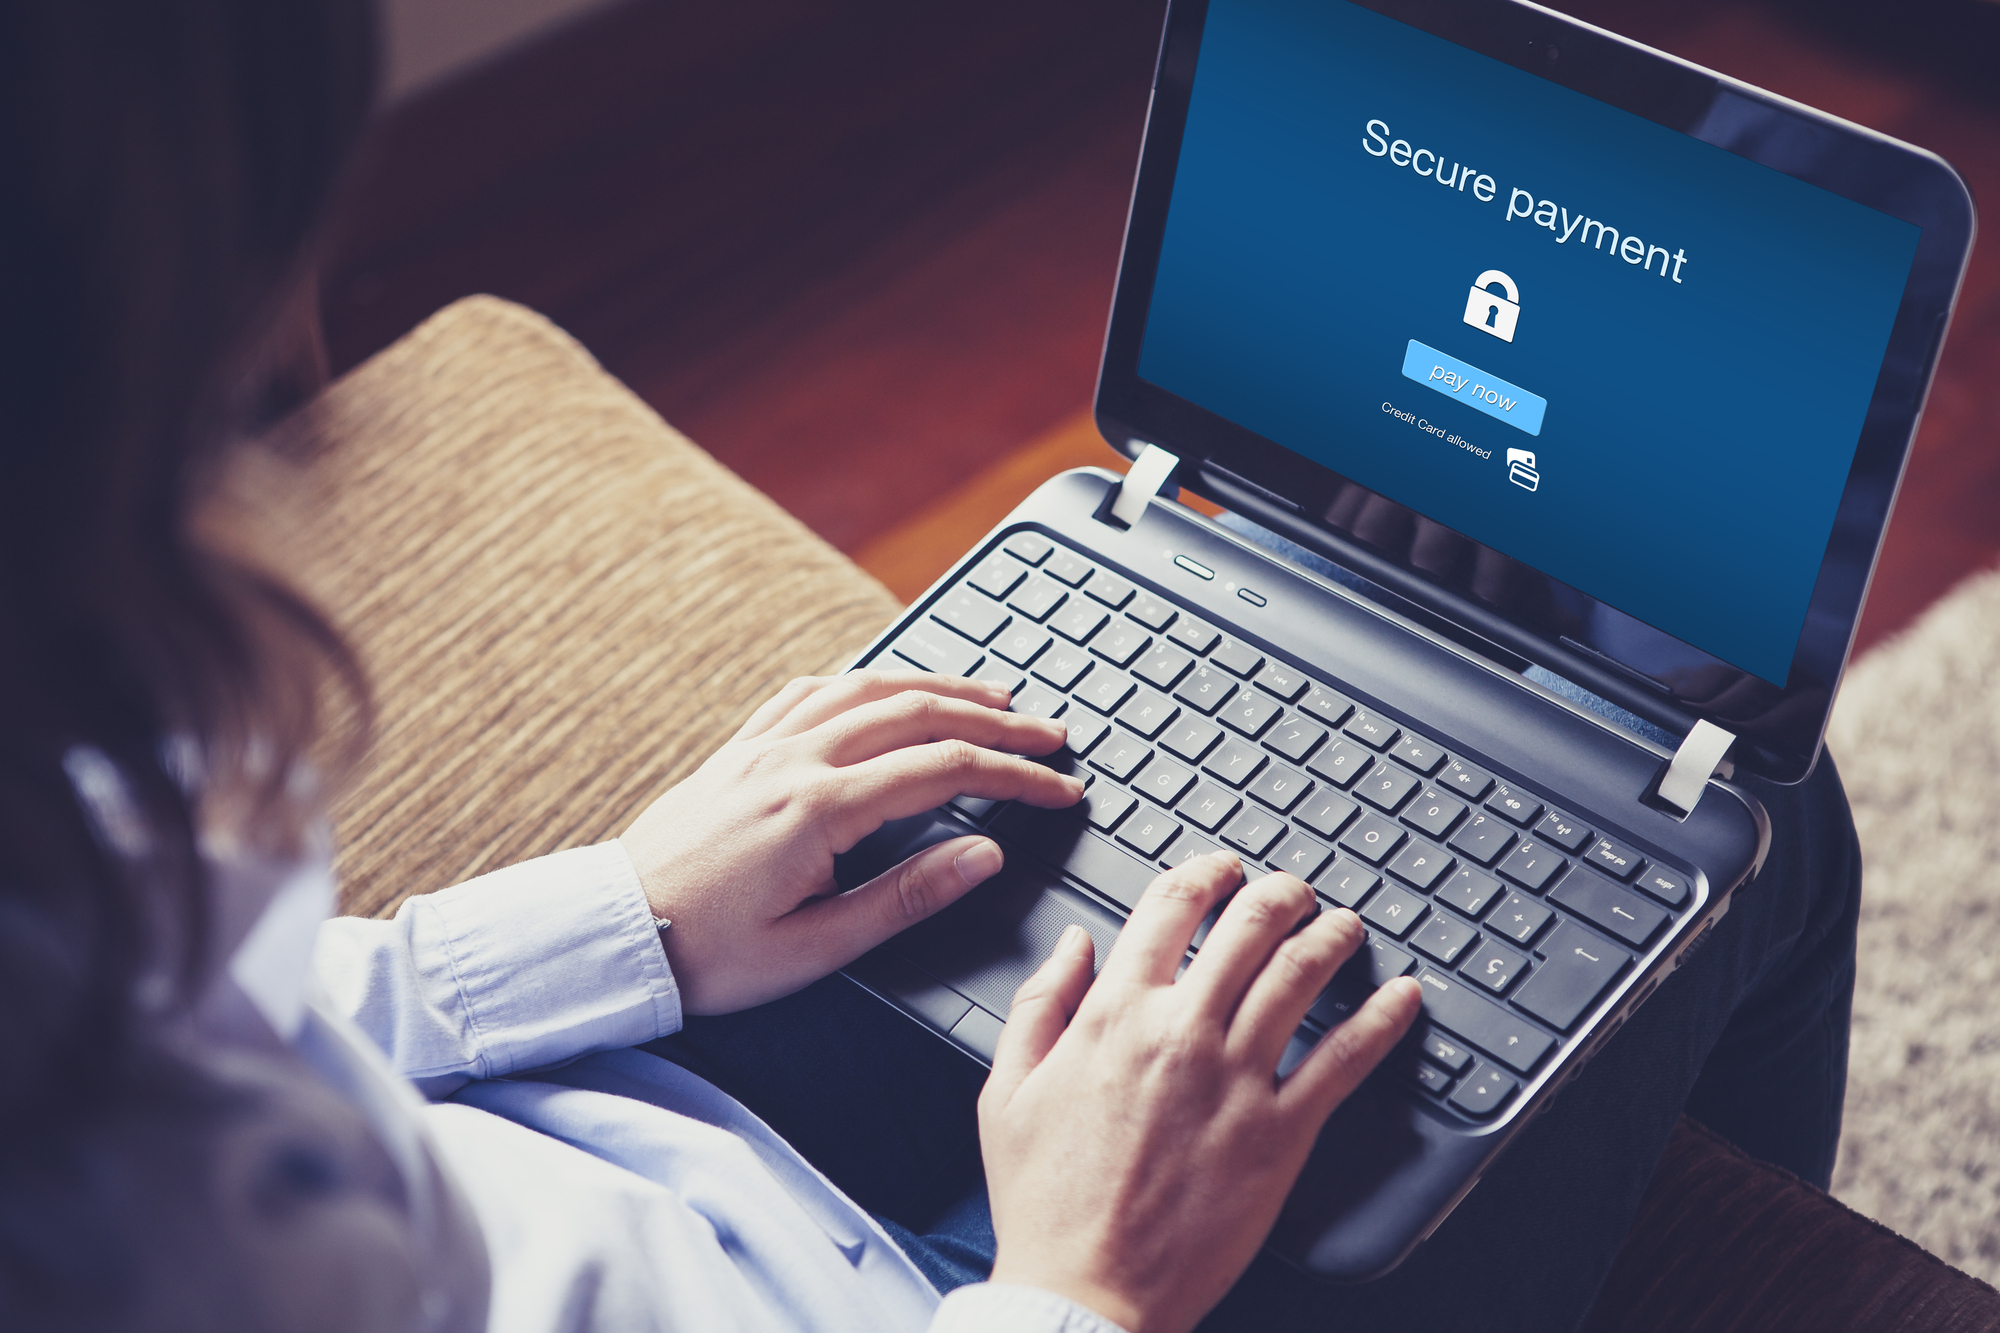 making secure payment on laptop